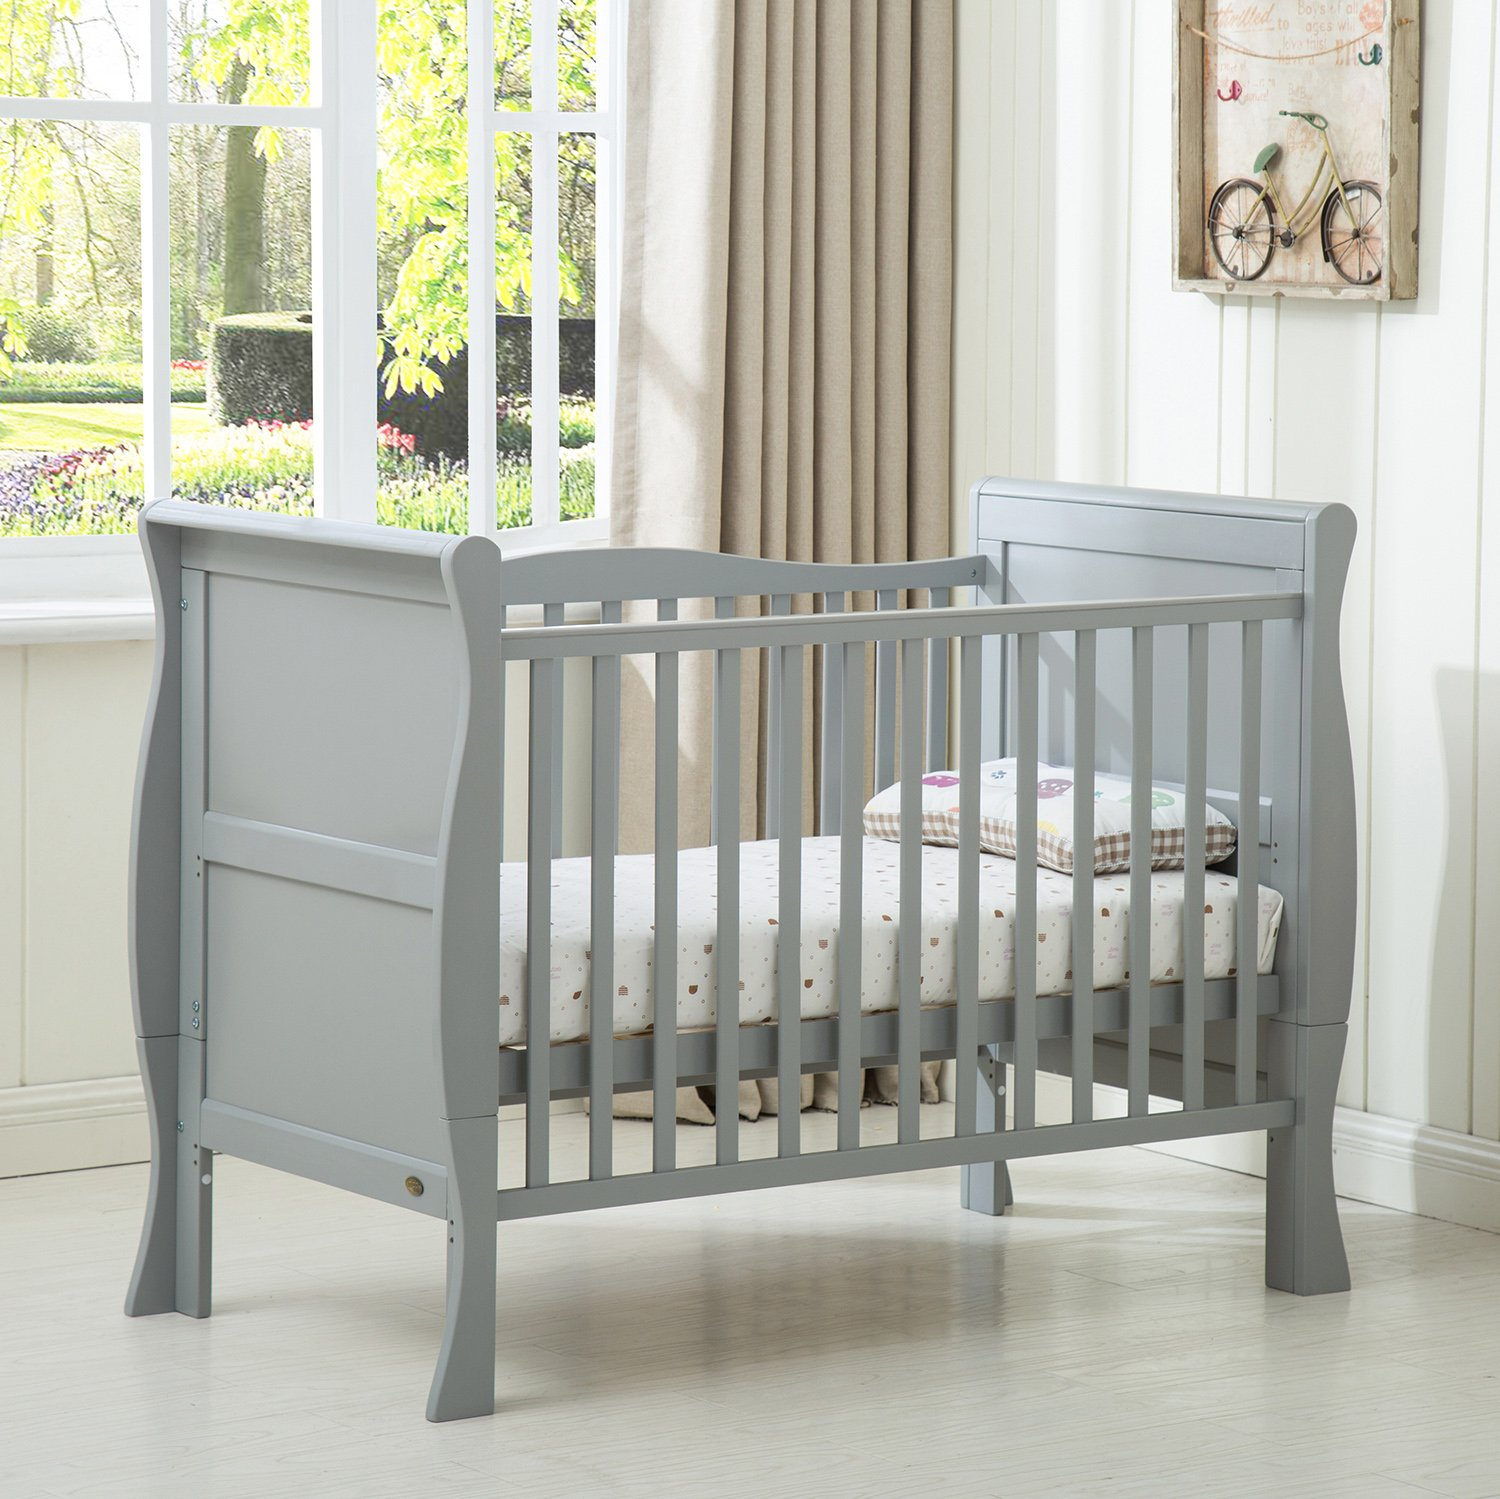 MCC/® Grey Solid Wooden Baby Cot Bed Savannah Sleigh Cotbed Toddler Bed /& Premier Water Repellent Mattress Made in England